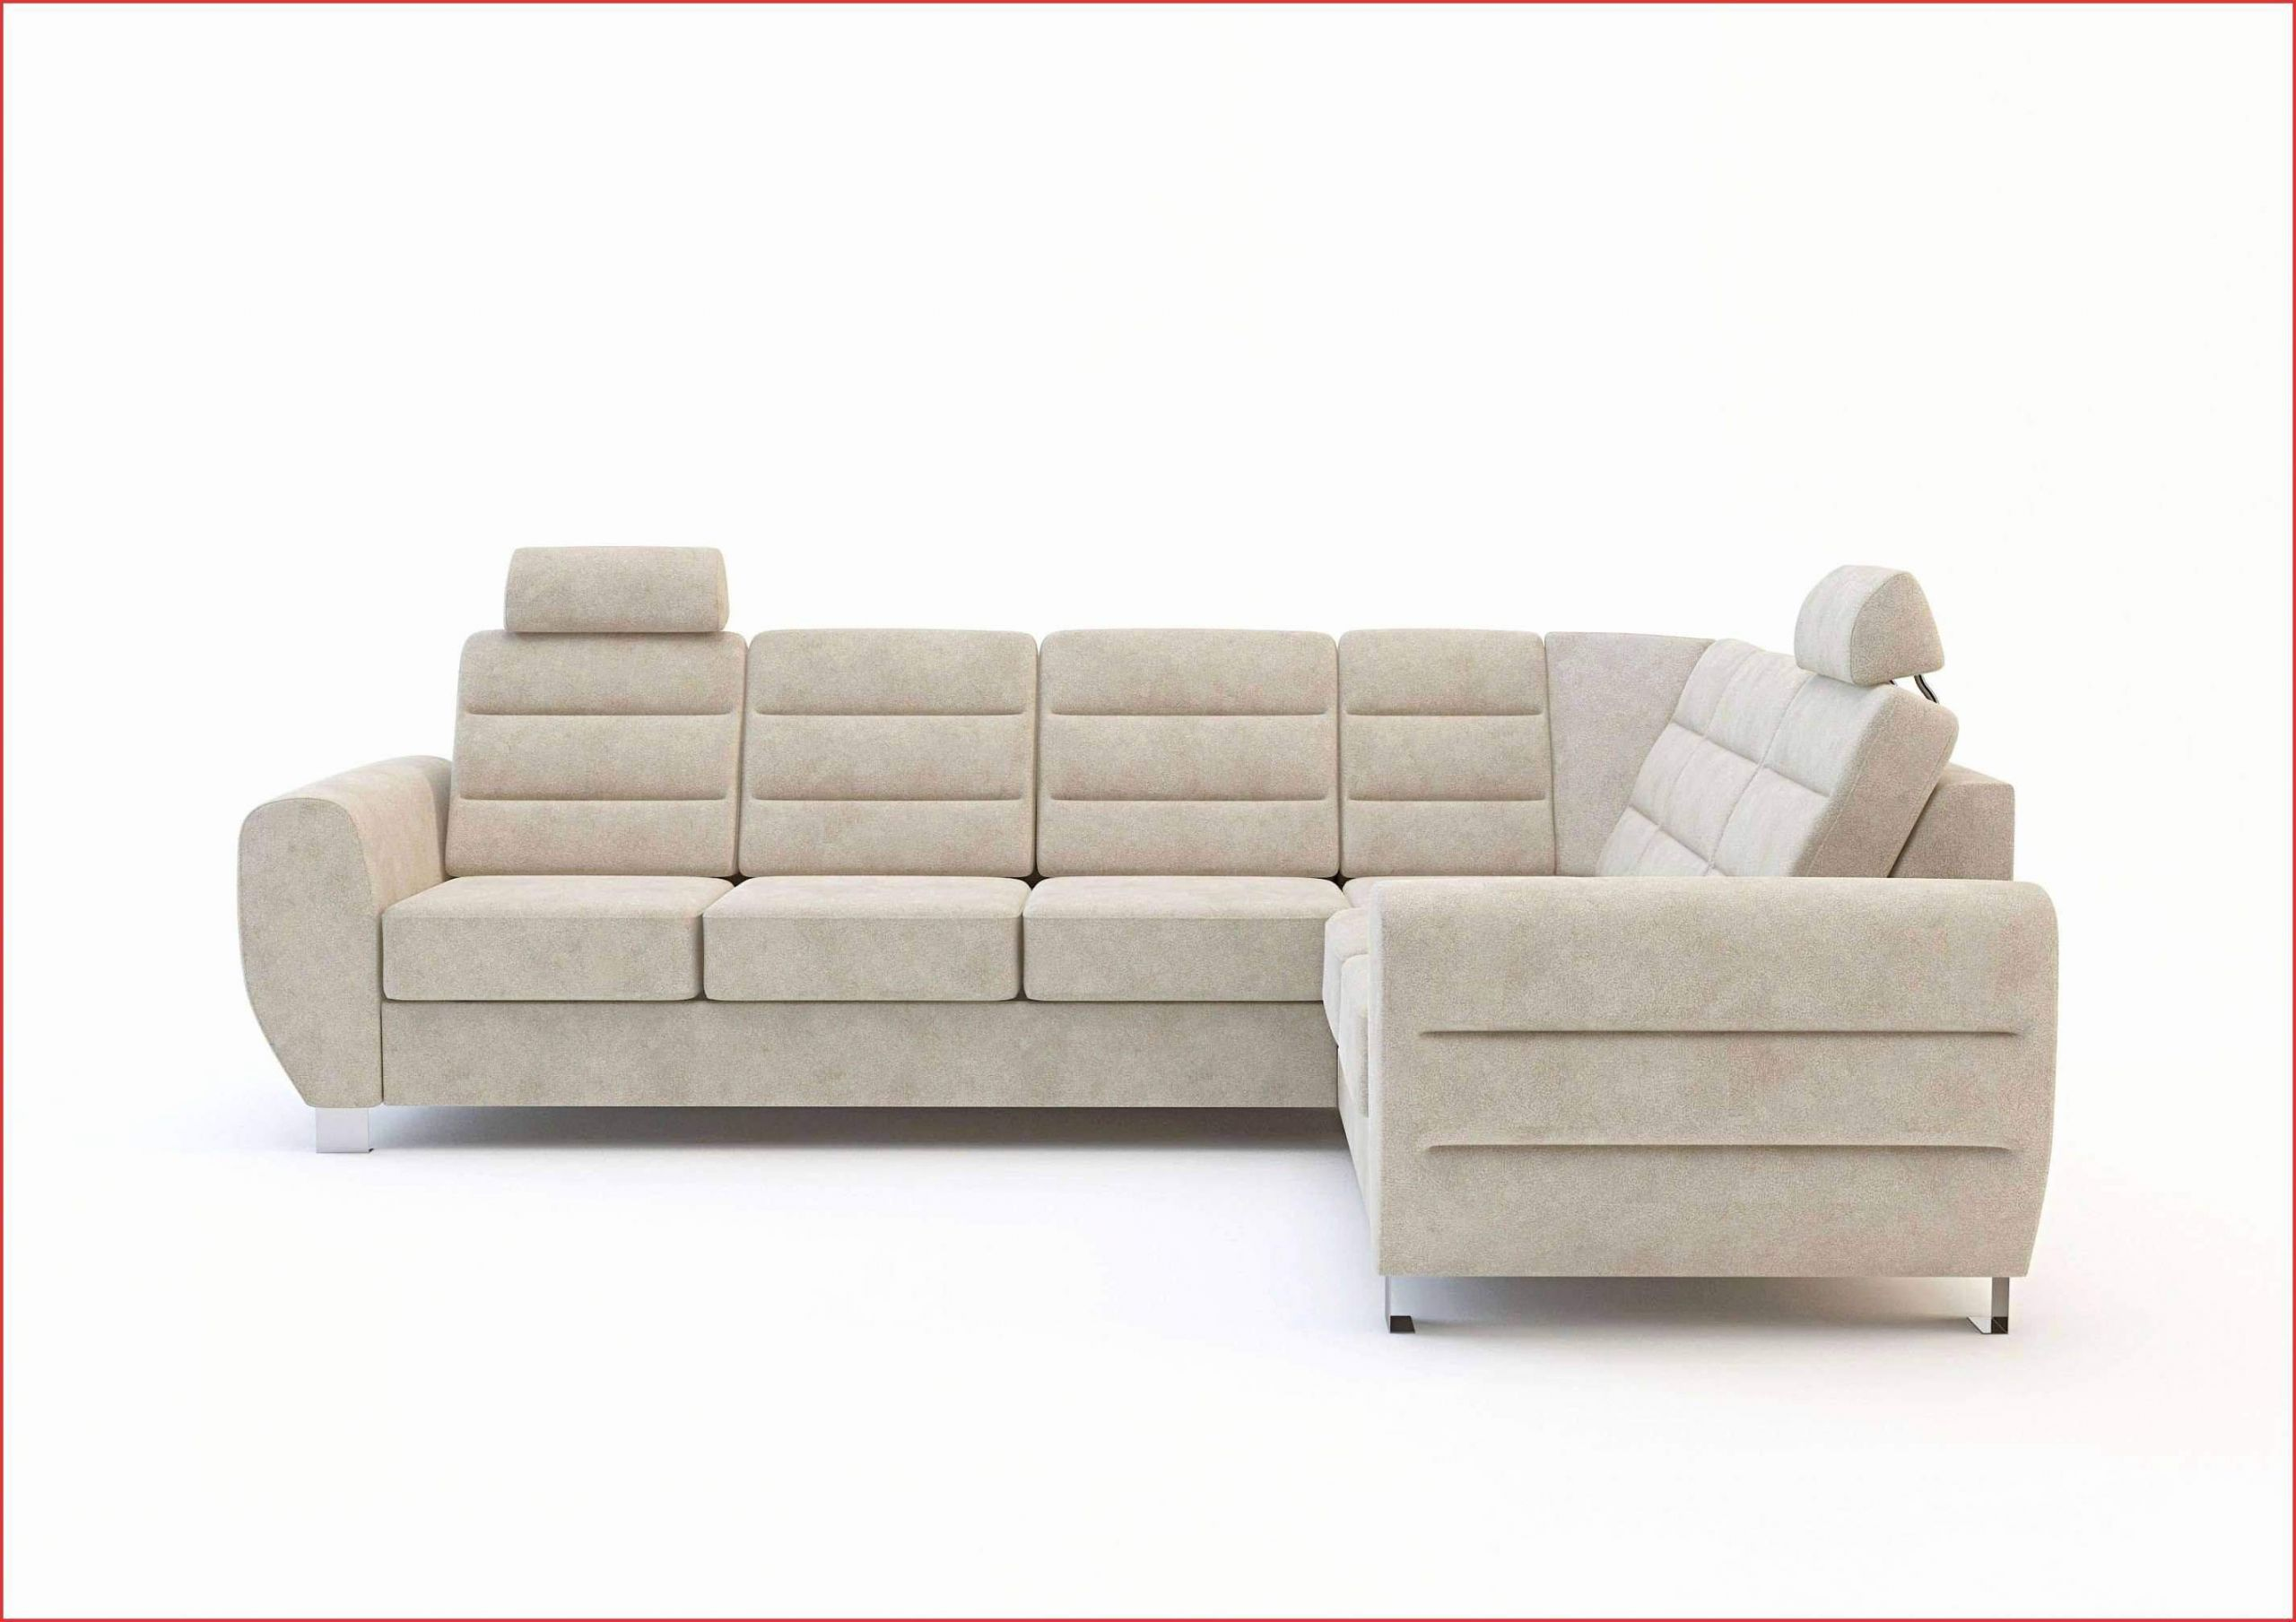 wohnzimmer chesterfield modern inspirational beige sofa living room awesome ideas sofa couch beautiful graue of wohnzimmer chesterfield modern